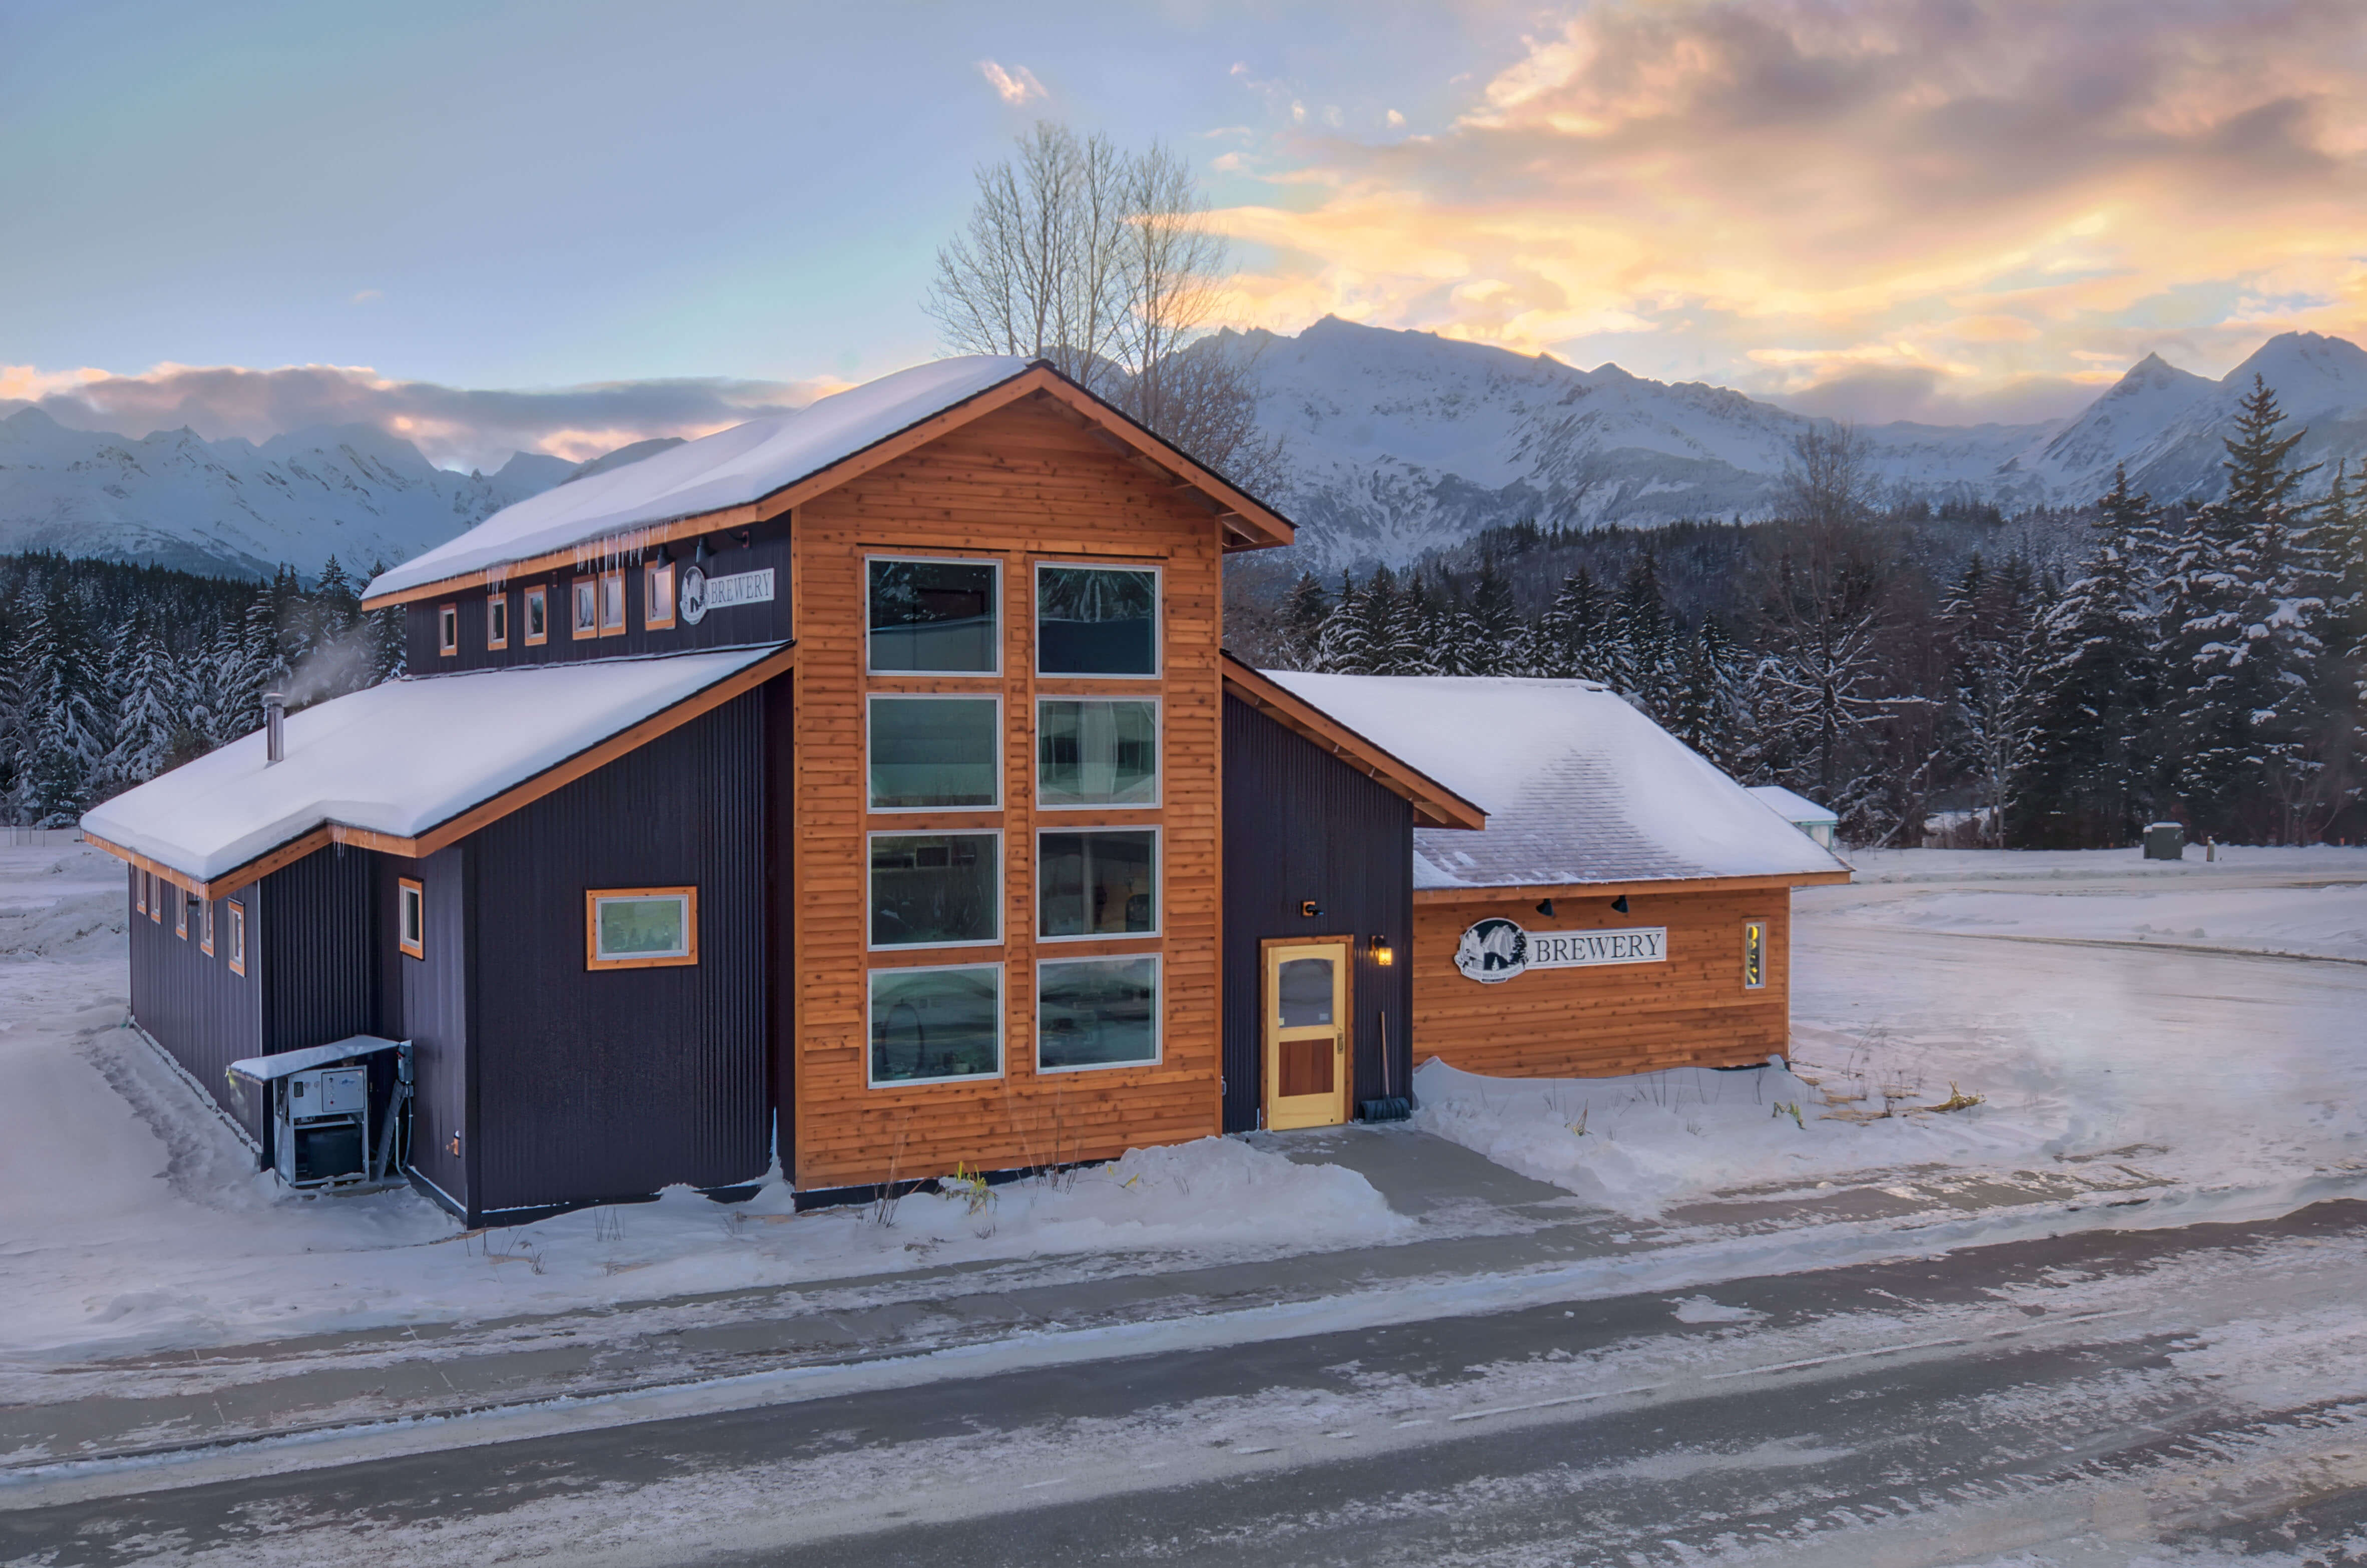 Expand Haines Brewery